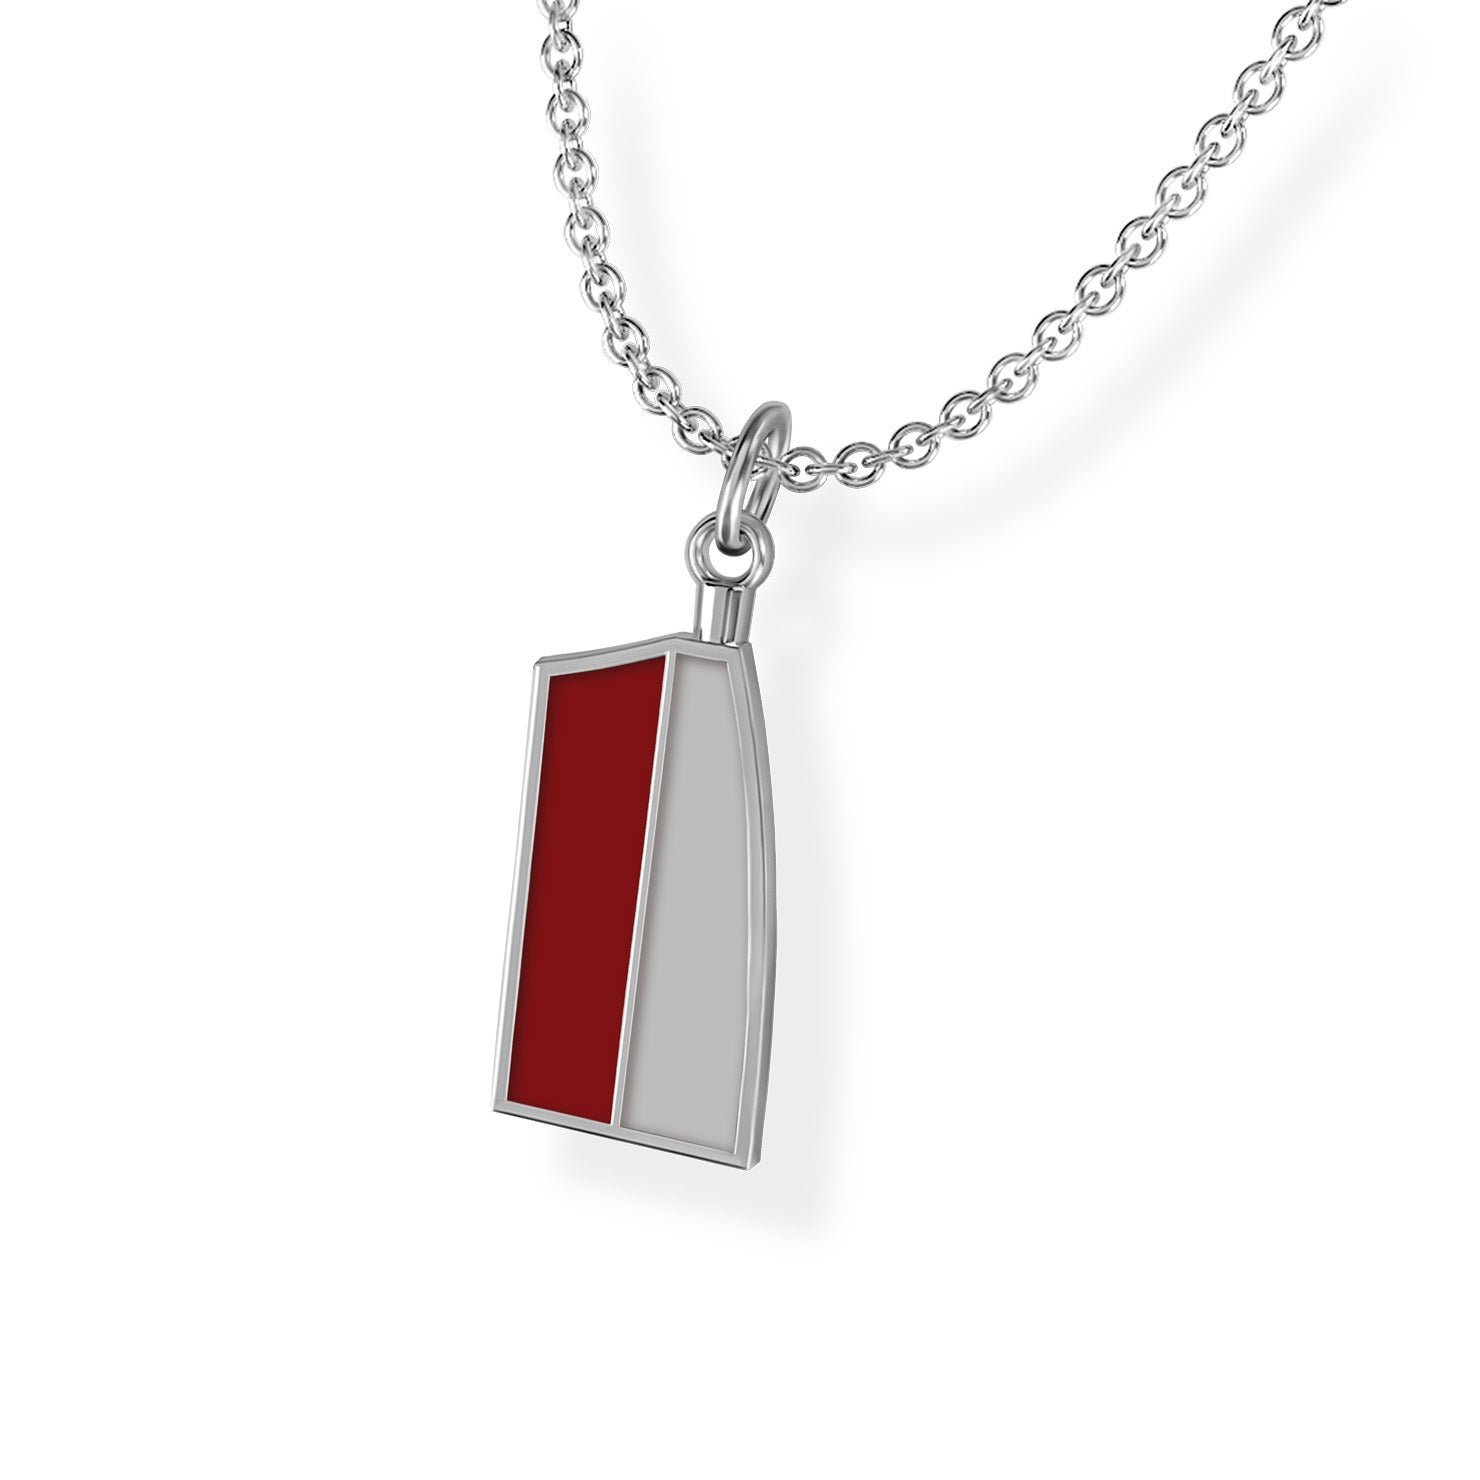 Vesper Pendant - Strokeside Designs Rowing jewelry- Rowing Gifts Ideas- Rowing Coach Gifts